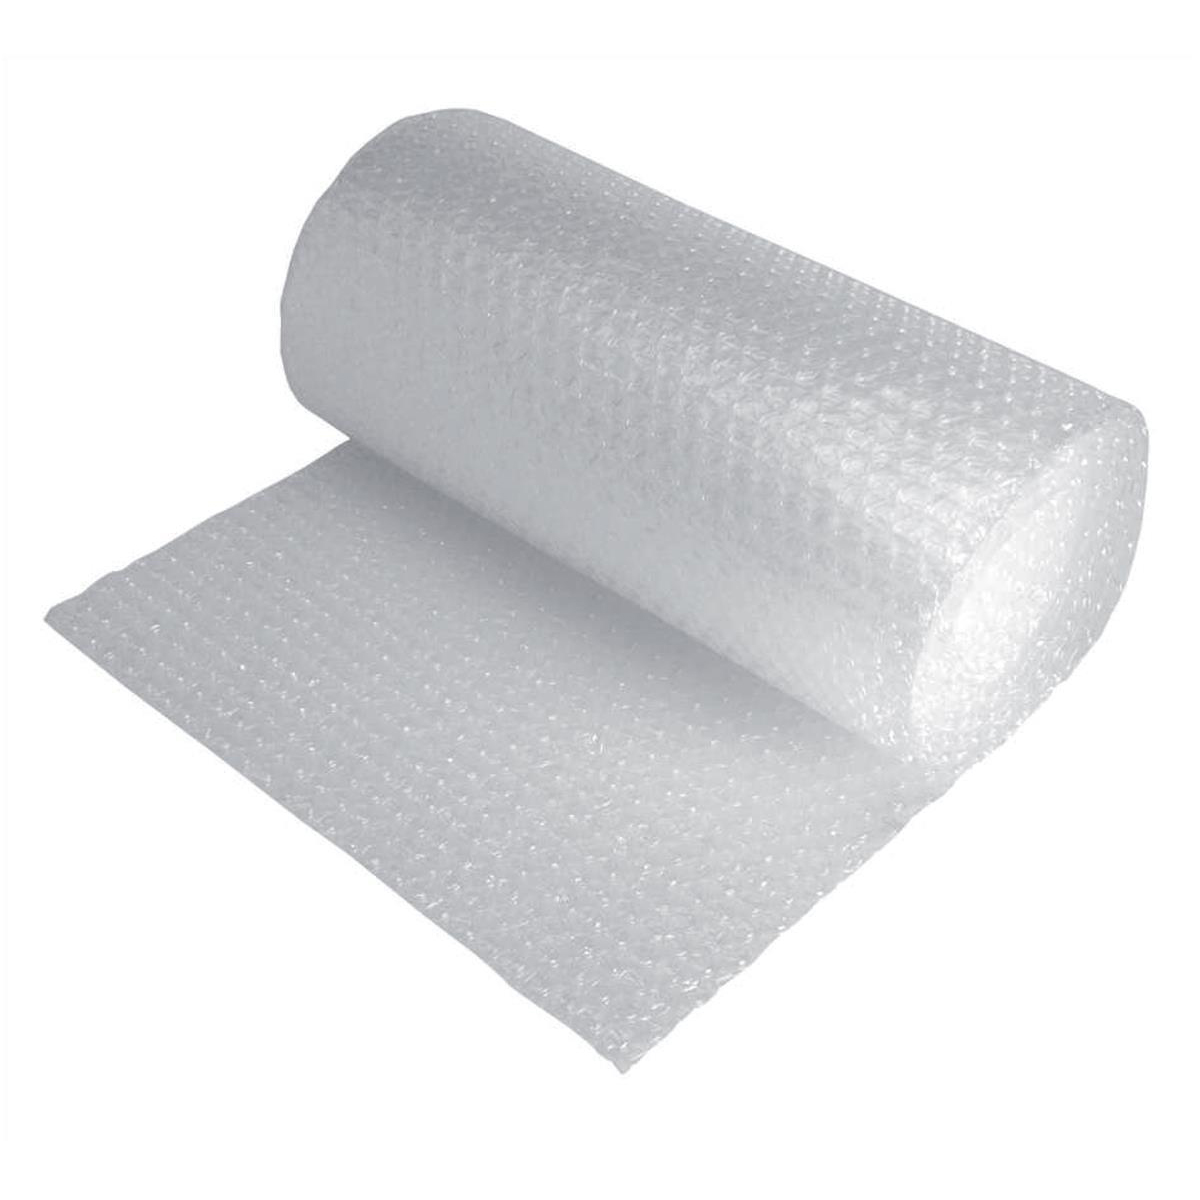 Jiffy Bubble Film Protective Packaging 10mm Bubbles Roll 500mmx10m Ref BROC37962